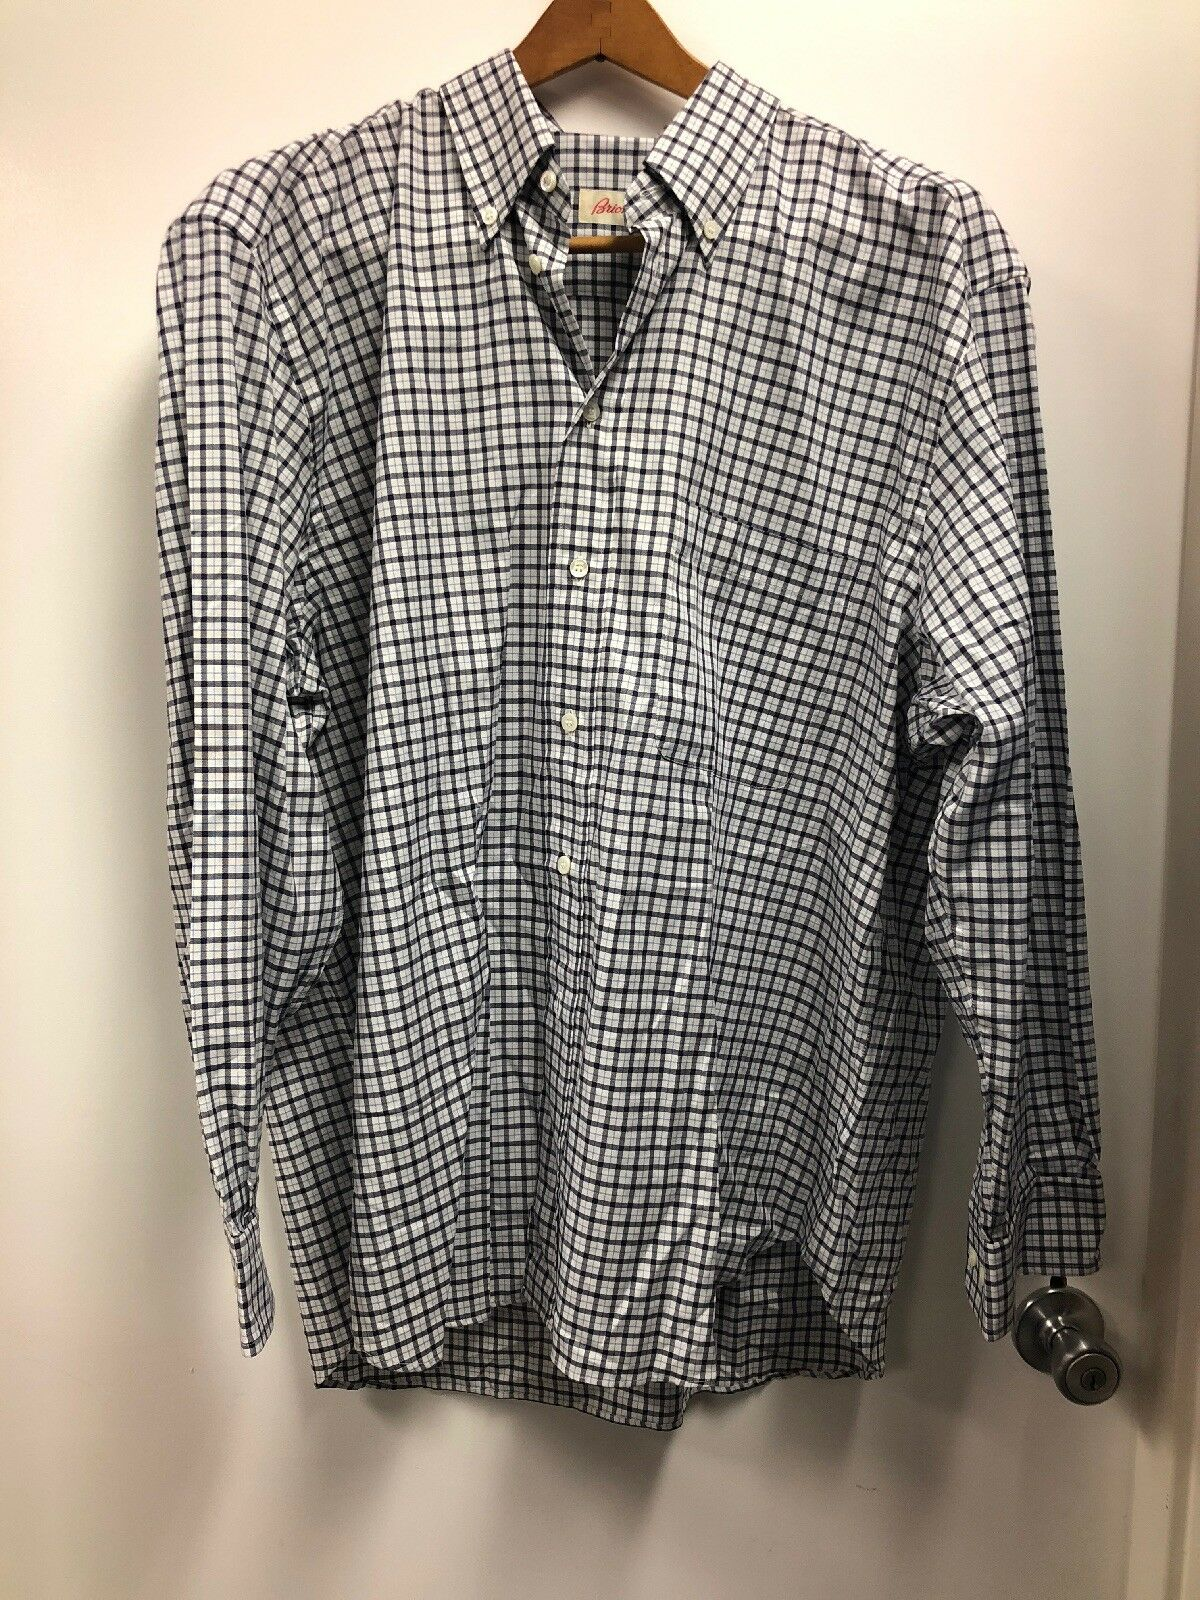 NWT  Brioni Mens Dress Shirt Size XL